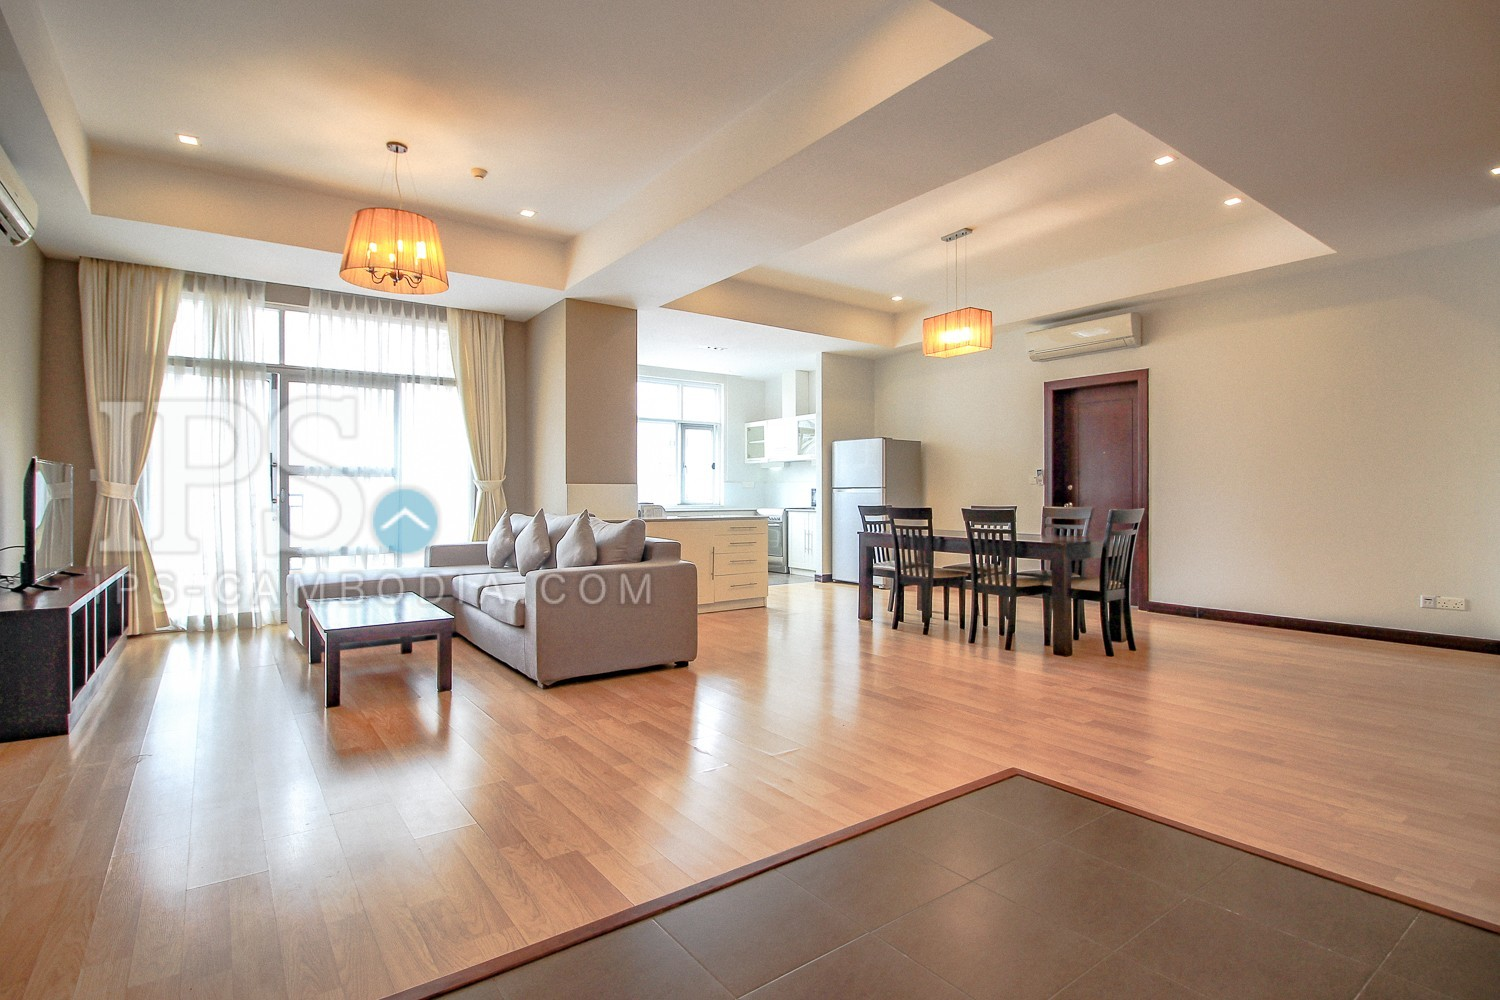 3 Bedroom Serviced Apartment For Rent - Tonle Bassac, Phnom Penh